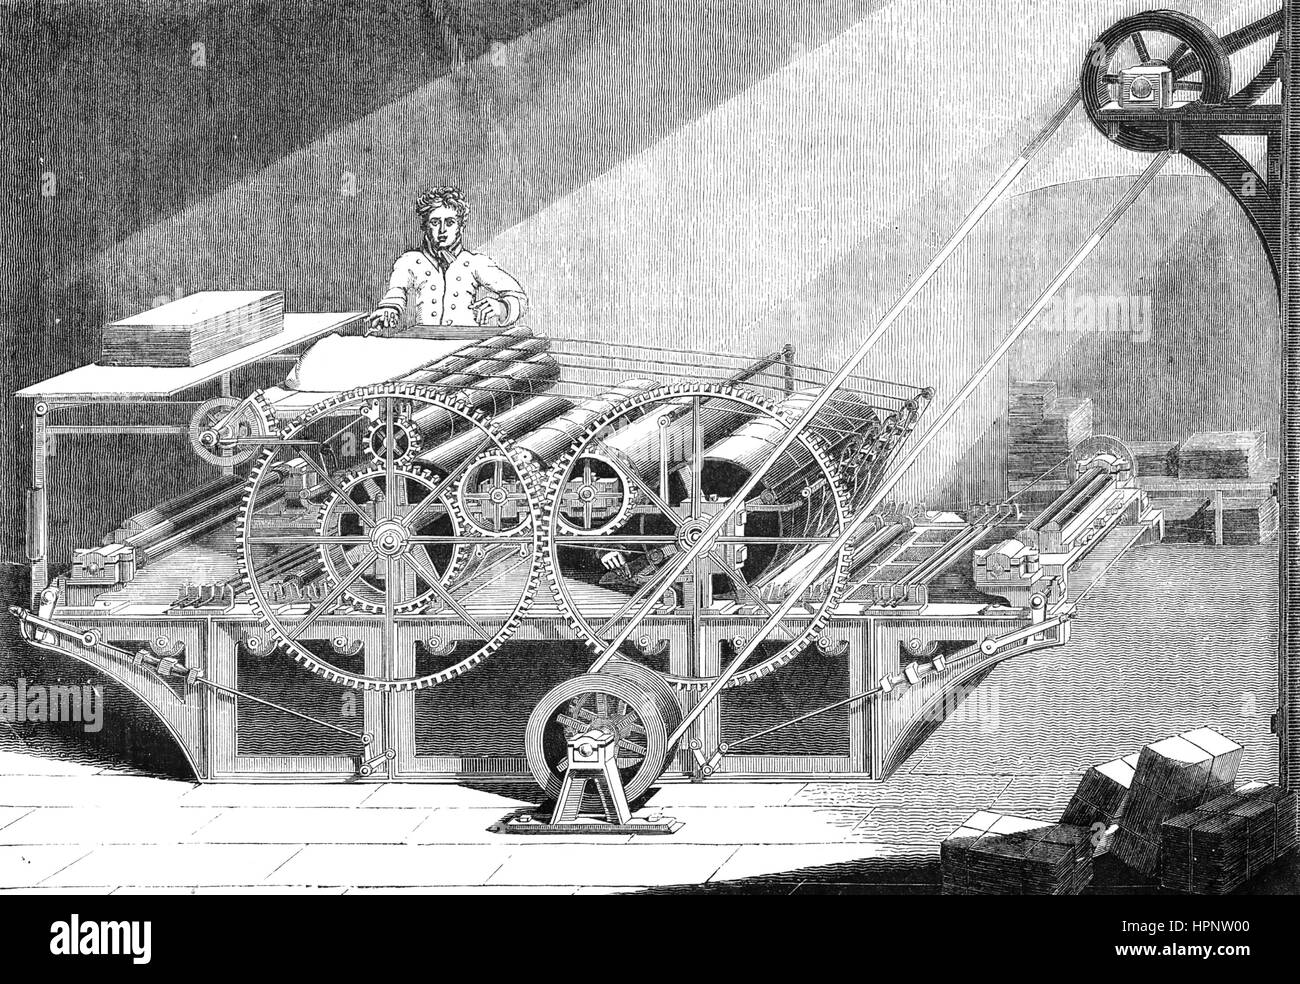 ENGLISH STEAM POWERED PRINTING MACHINE about 1850 - Stock Image